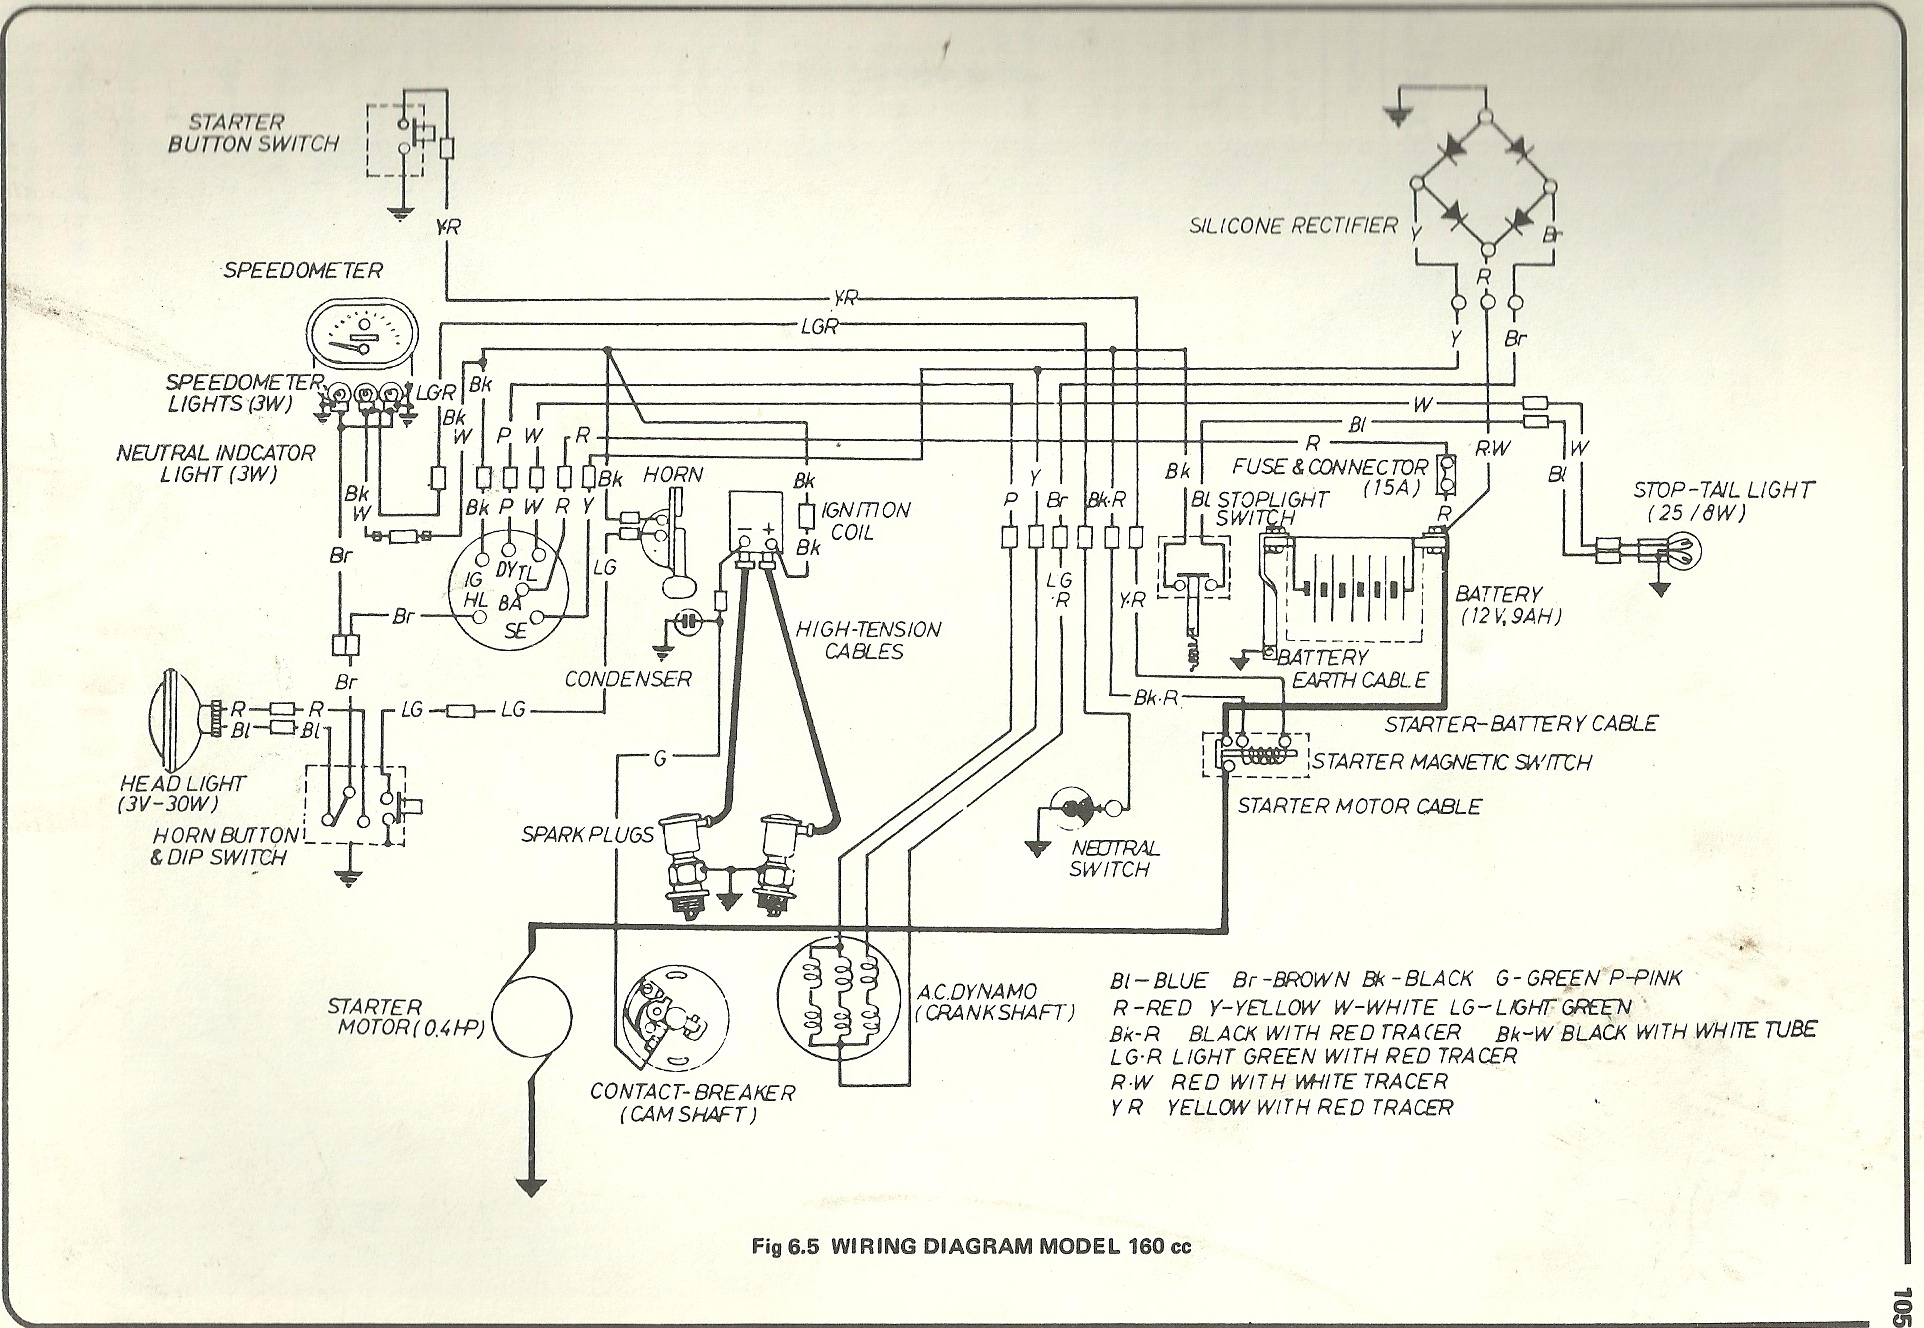 1973 kawasaki wiring diagram wiring library Kawasaki Mule Ignition Wiring Diagram cb160 wiring diagrams cb160